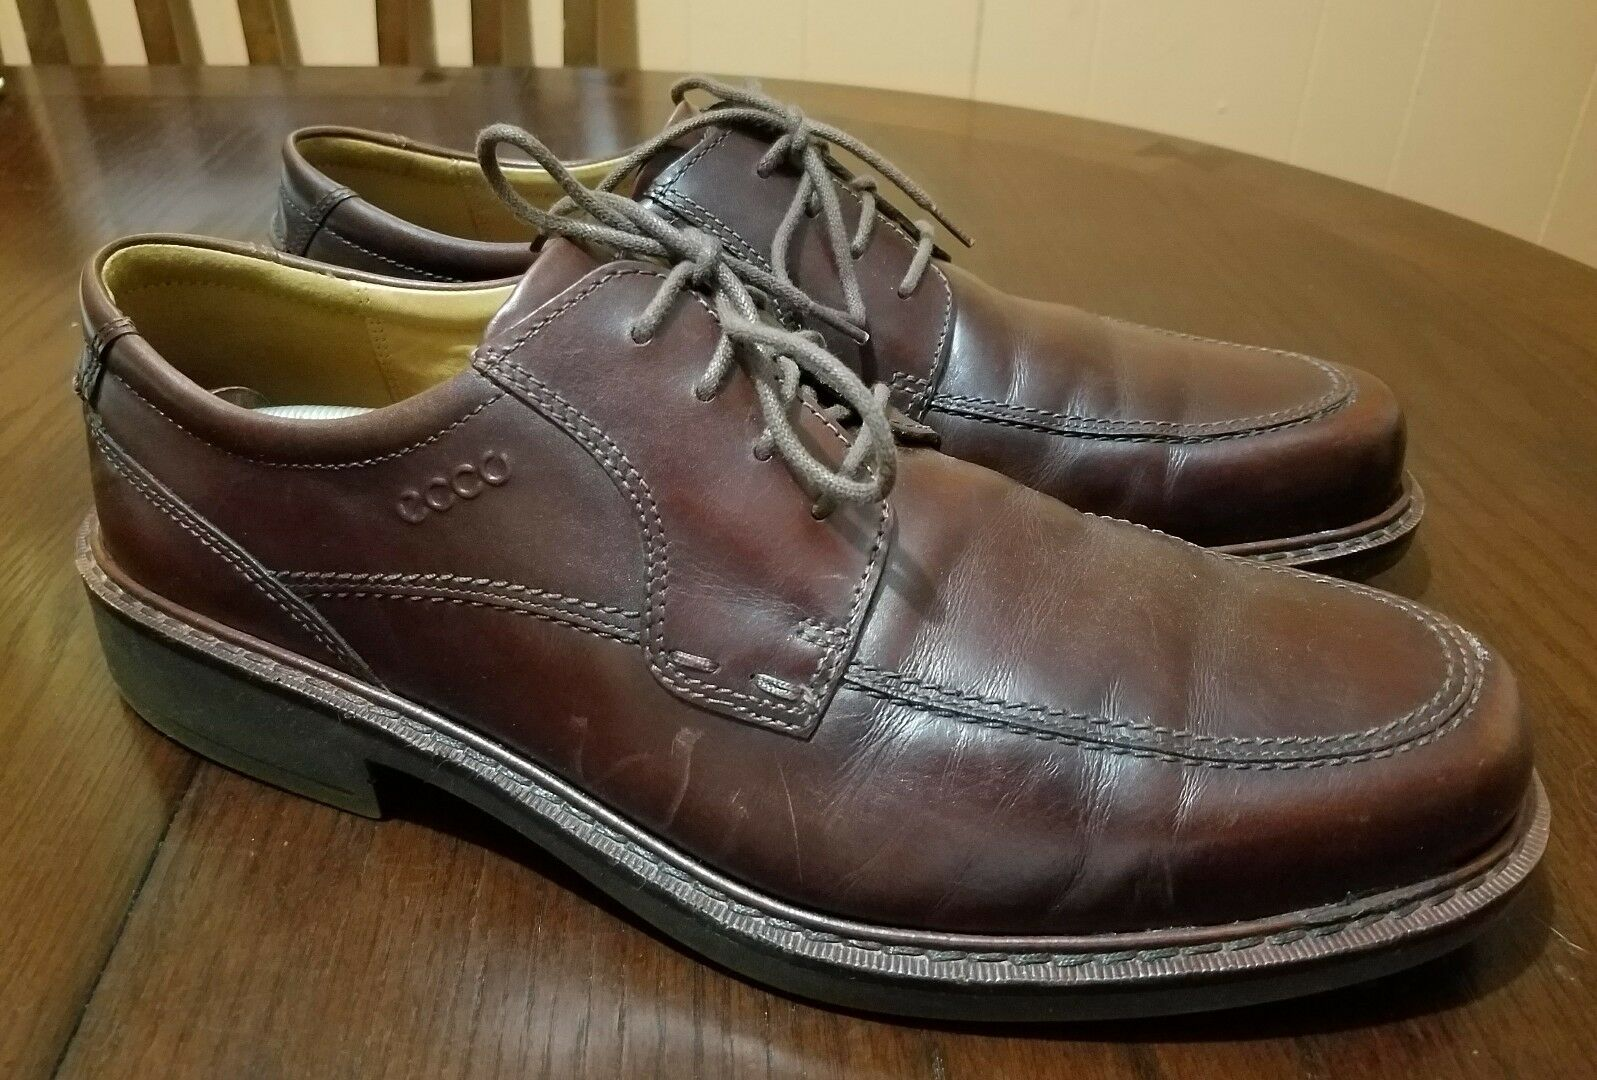 ECCO Brown Leather Vegetable Tanned Insole Men Oxford shoes US 11.5,